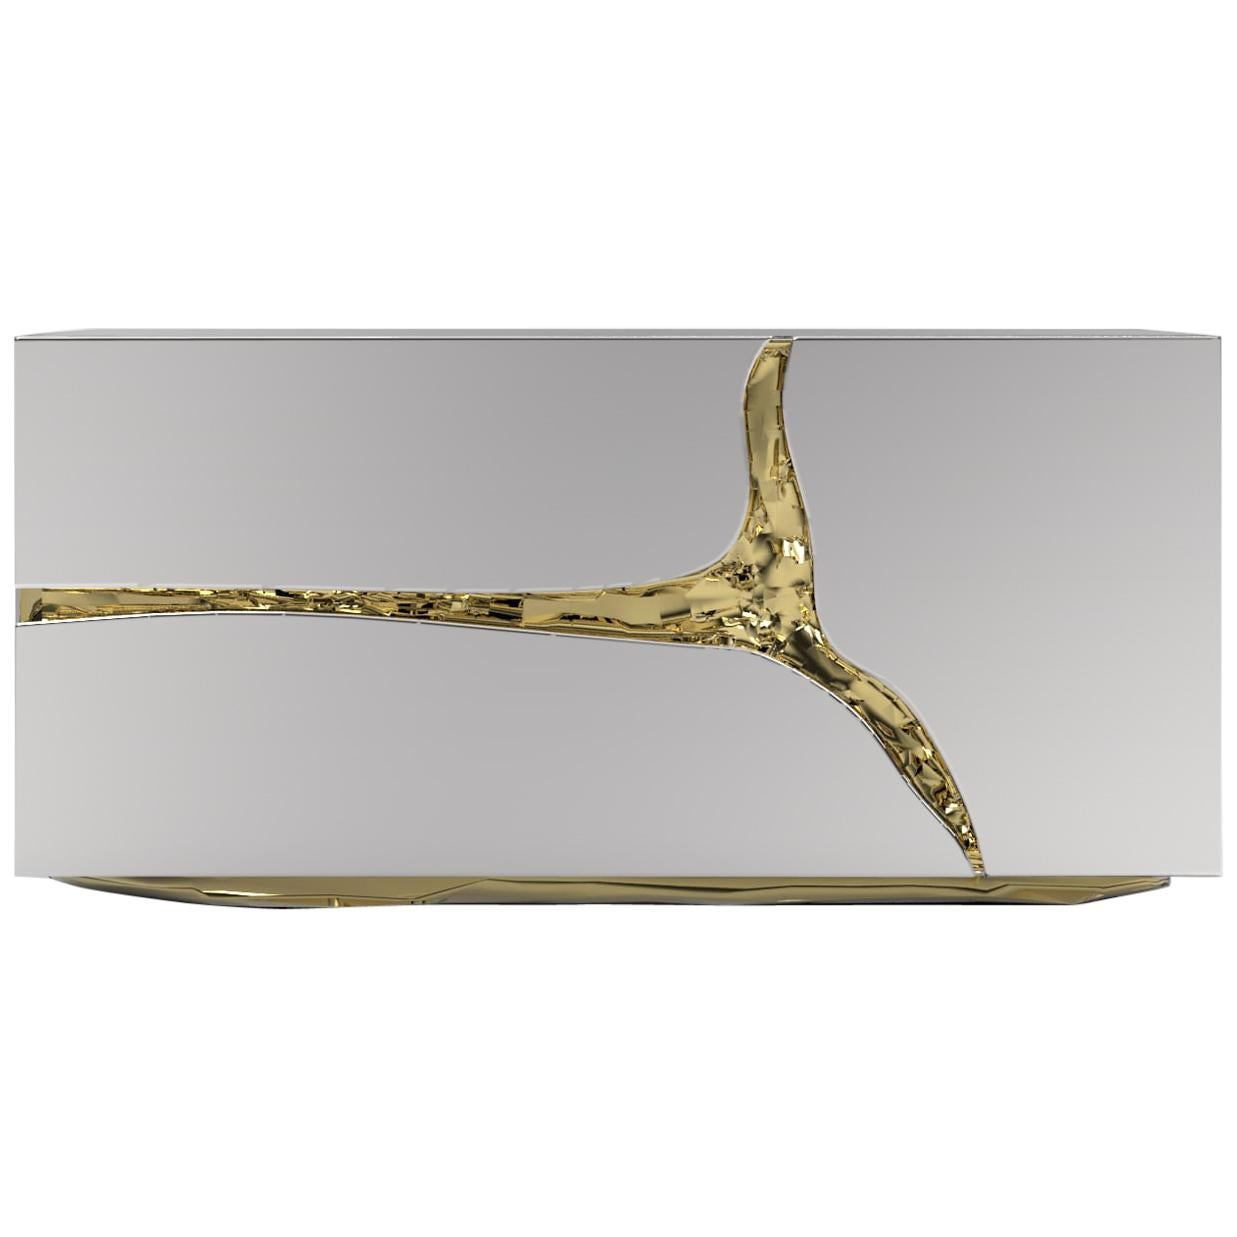 Lapiaz Nightstand in Polished Stainless Steel and Brass Details